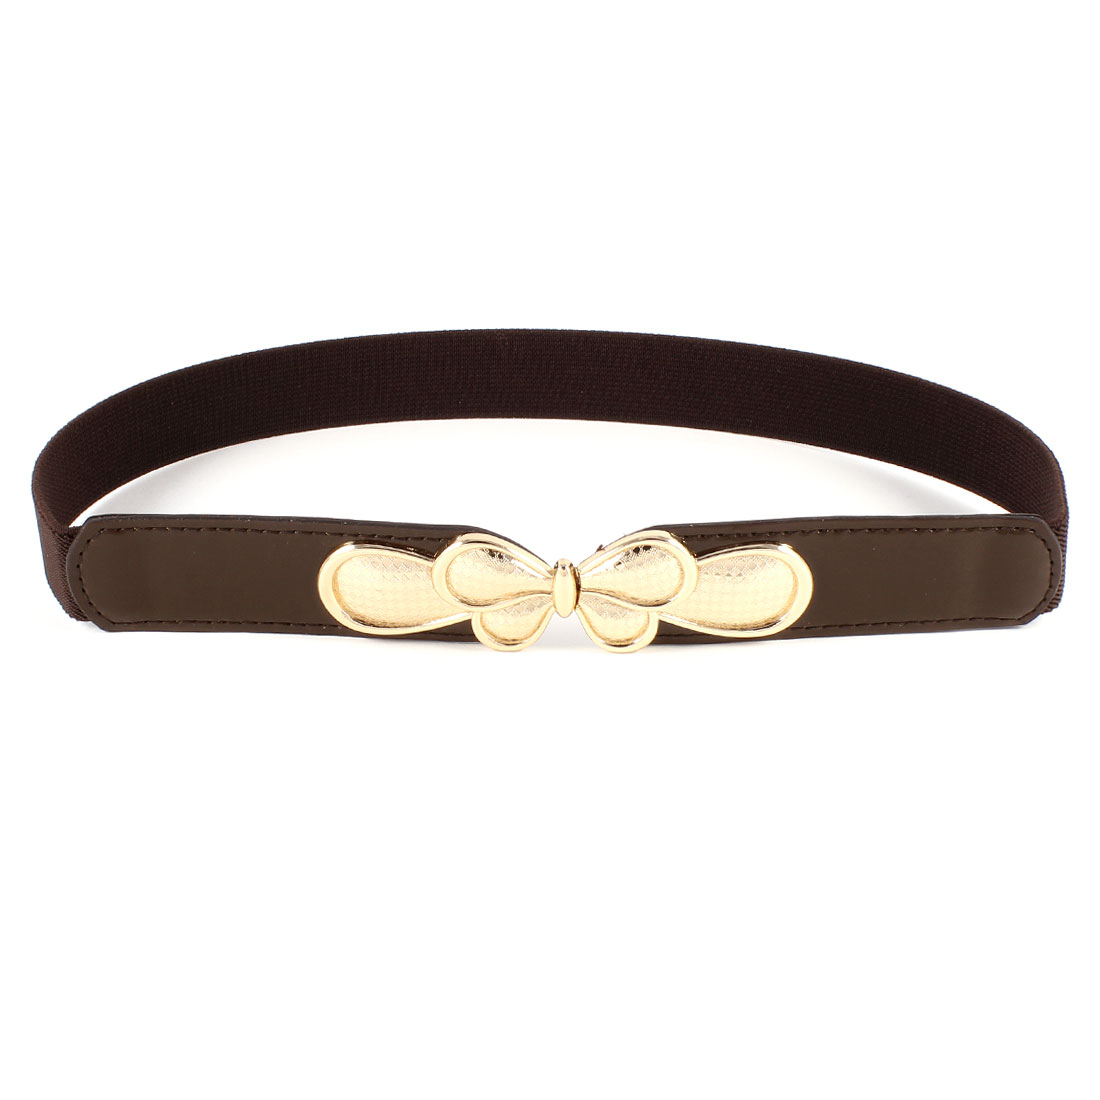 Woman Butterfly Interlocking Closure Cinch Waist Belt 2.5CM Wide Dark Brown